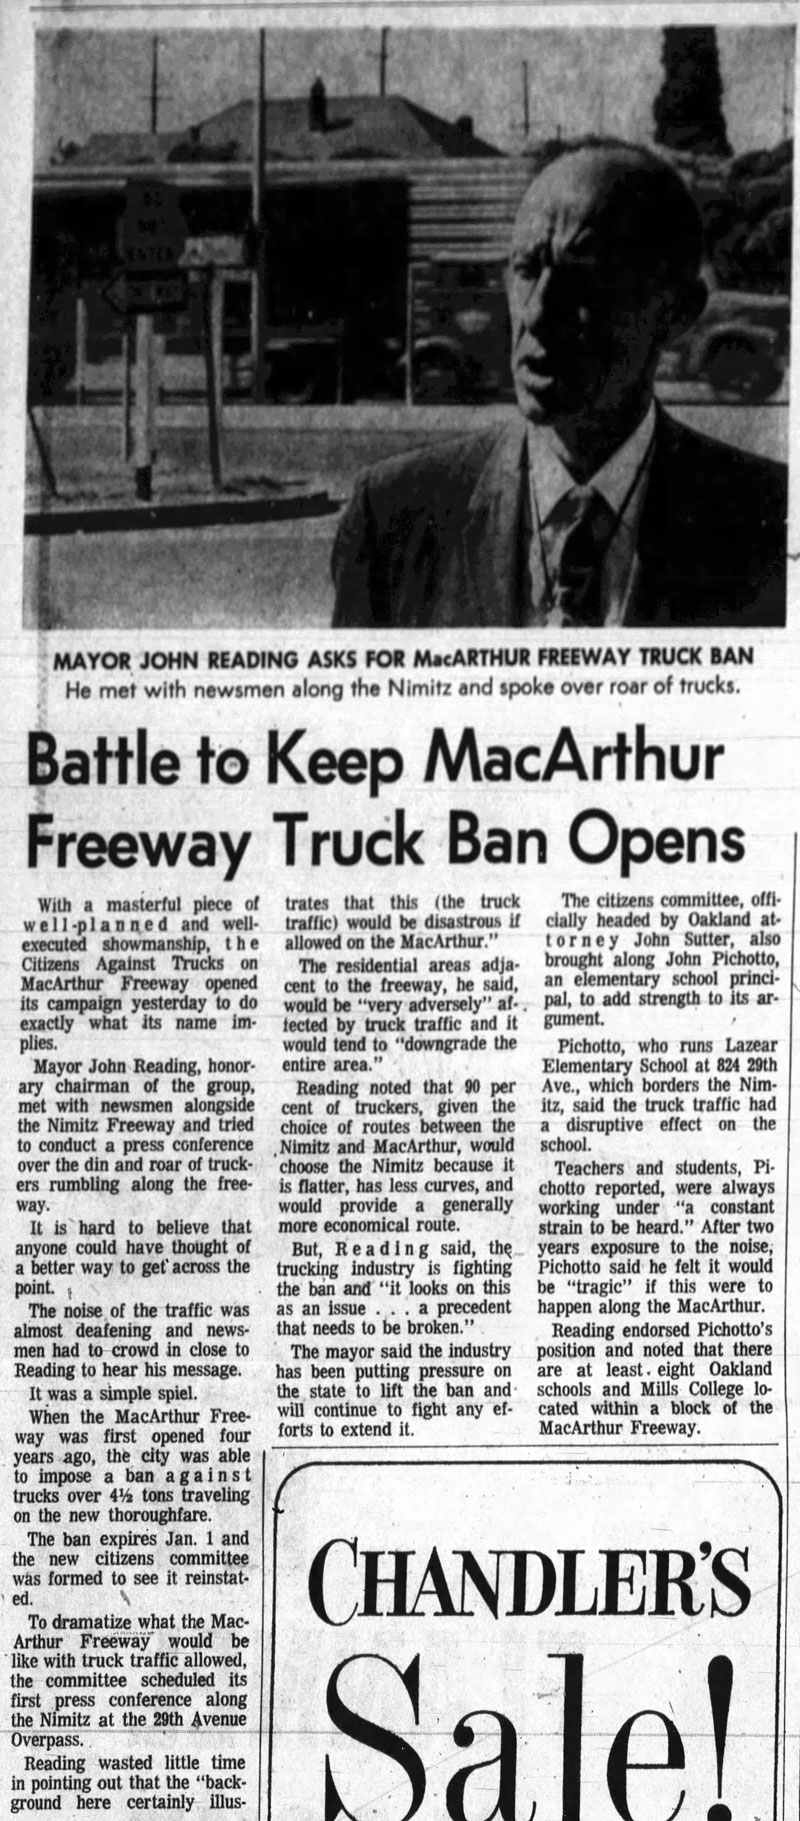 Oakland tribune article from July 4, 1967